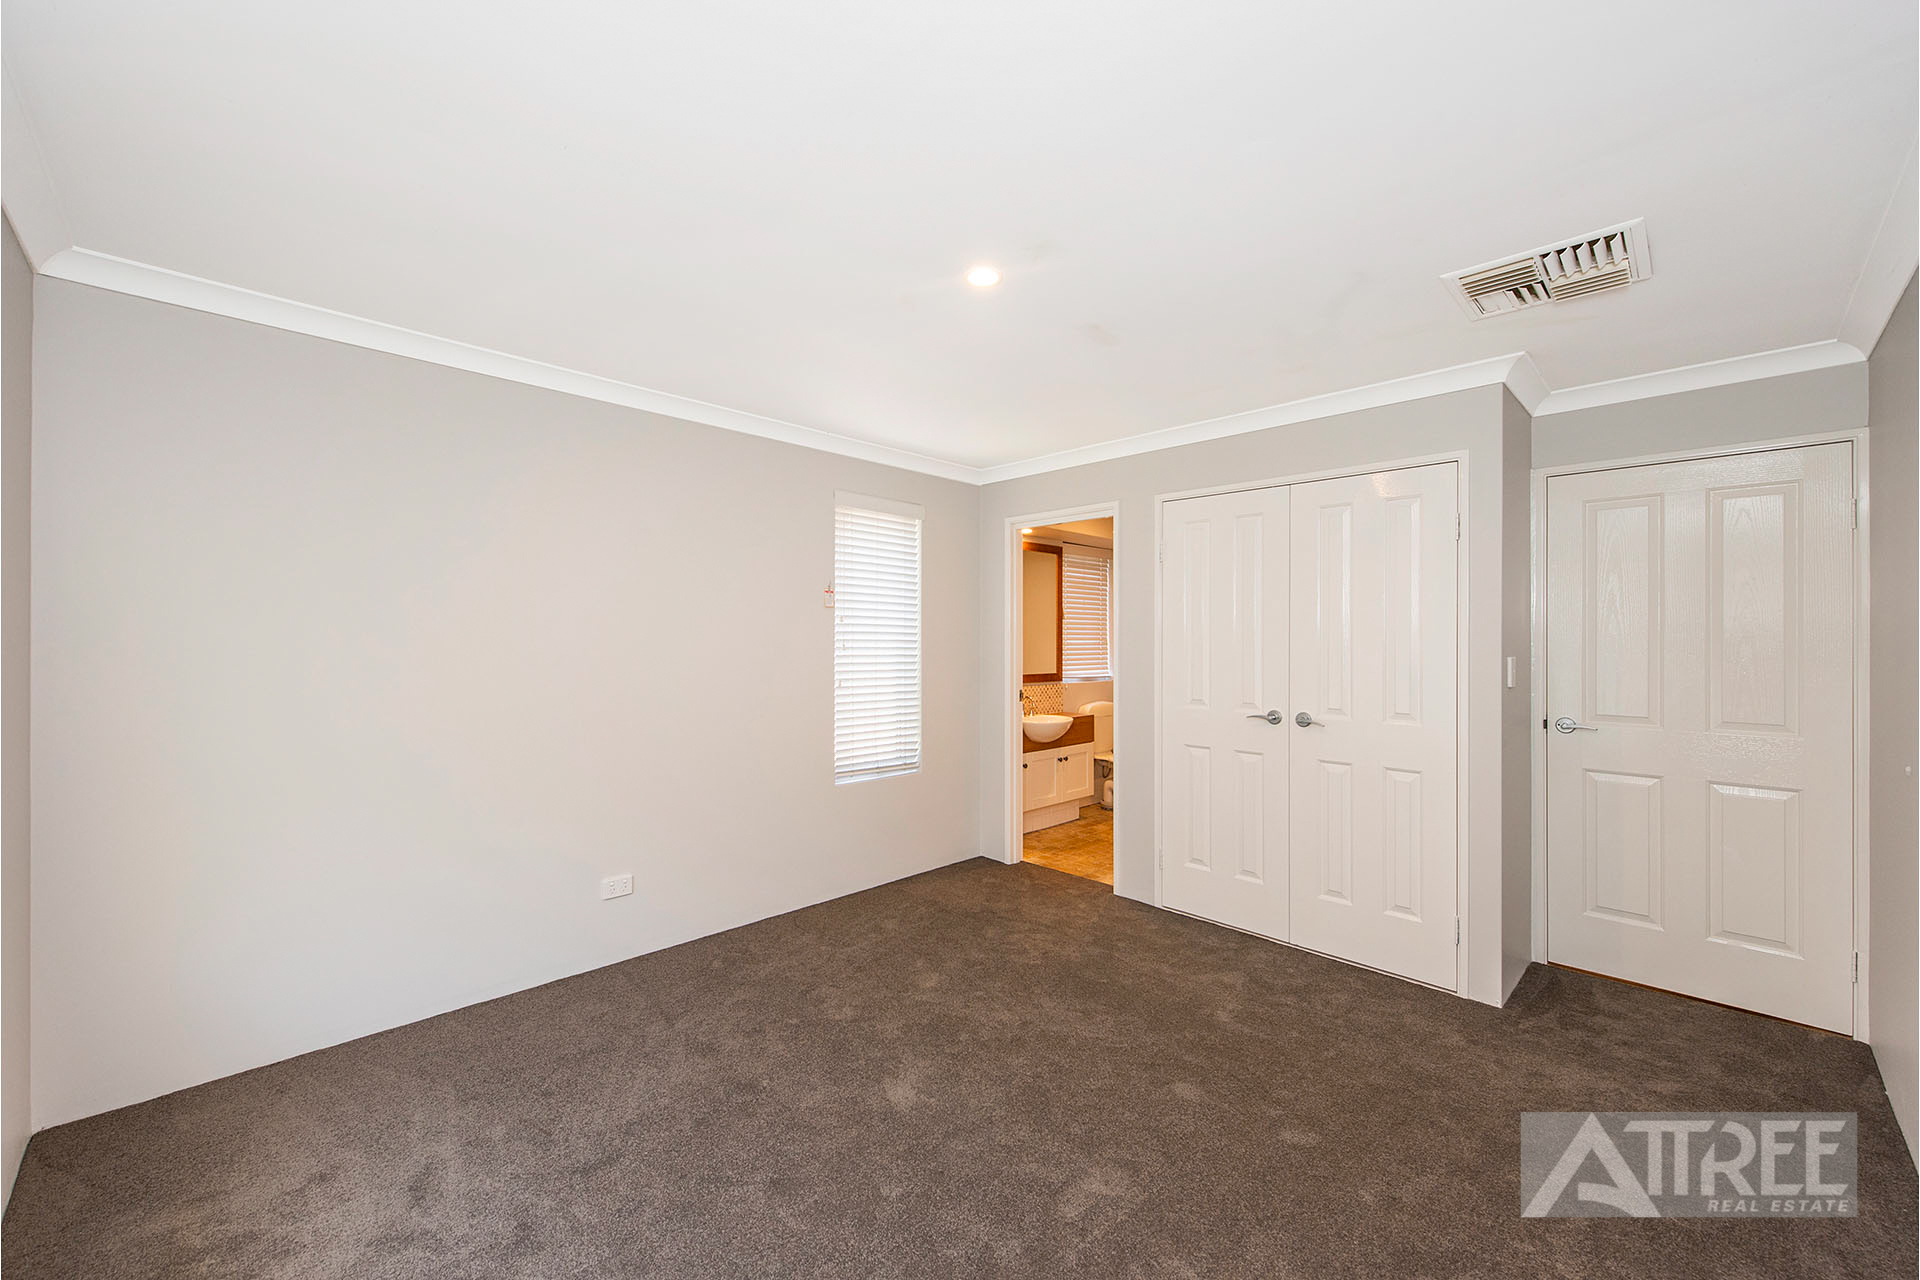 Property for sale in SOUTHERN RIVER, 45 Waterview Parade : Attree Real Estate